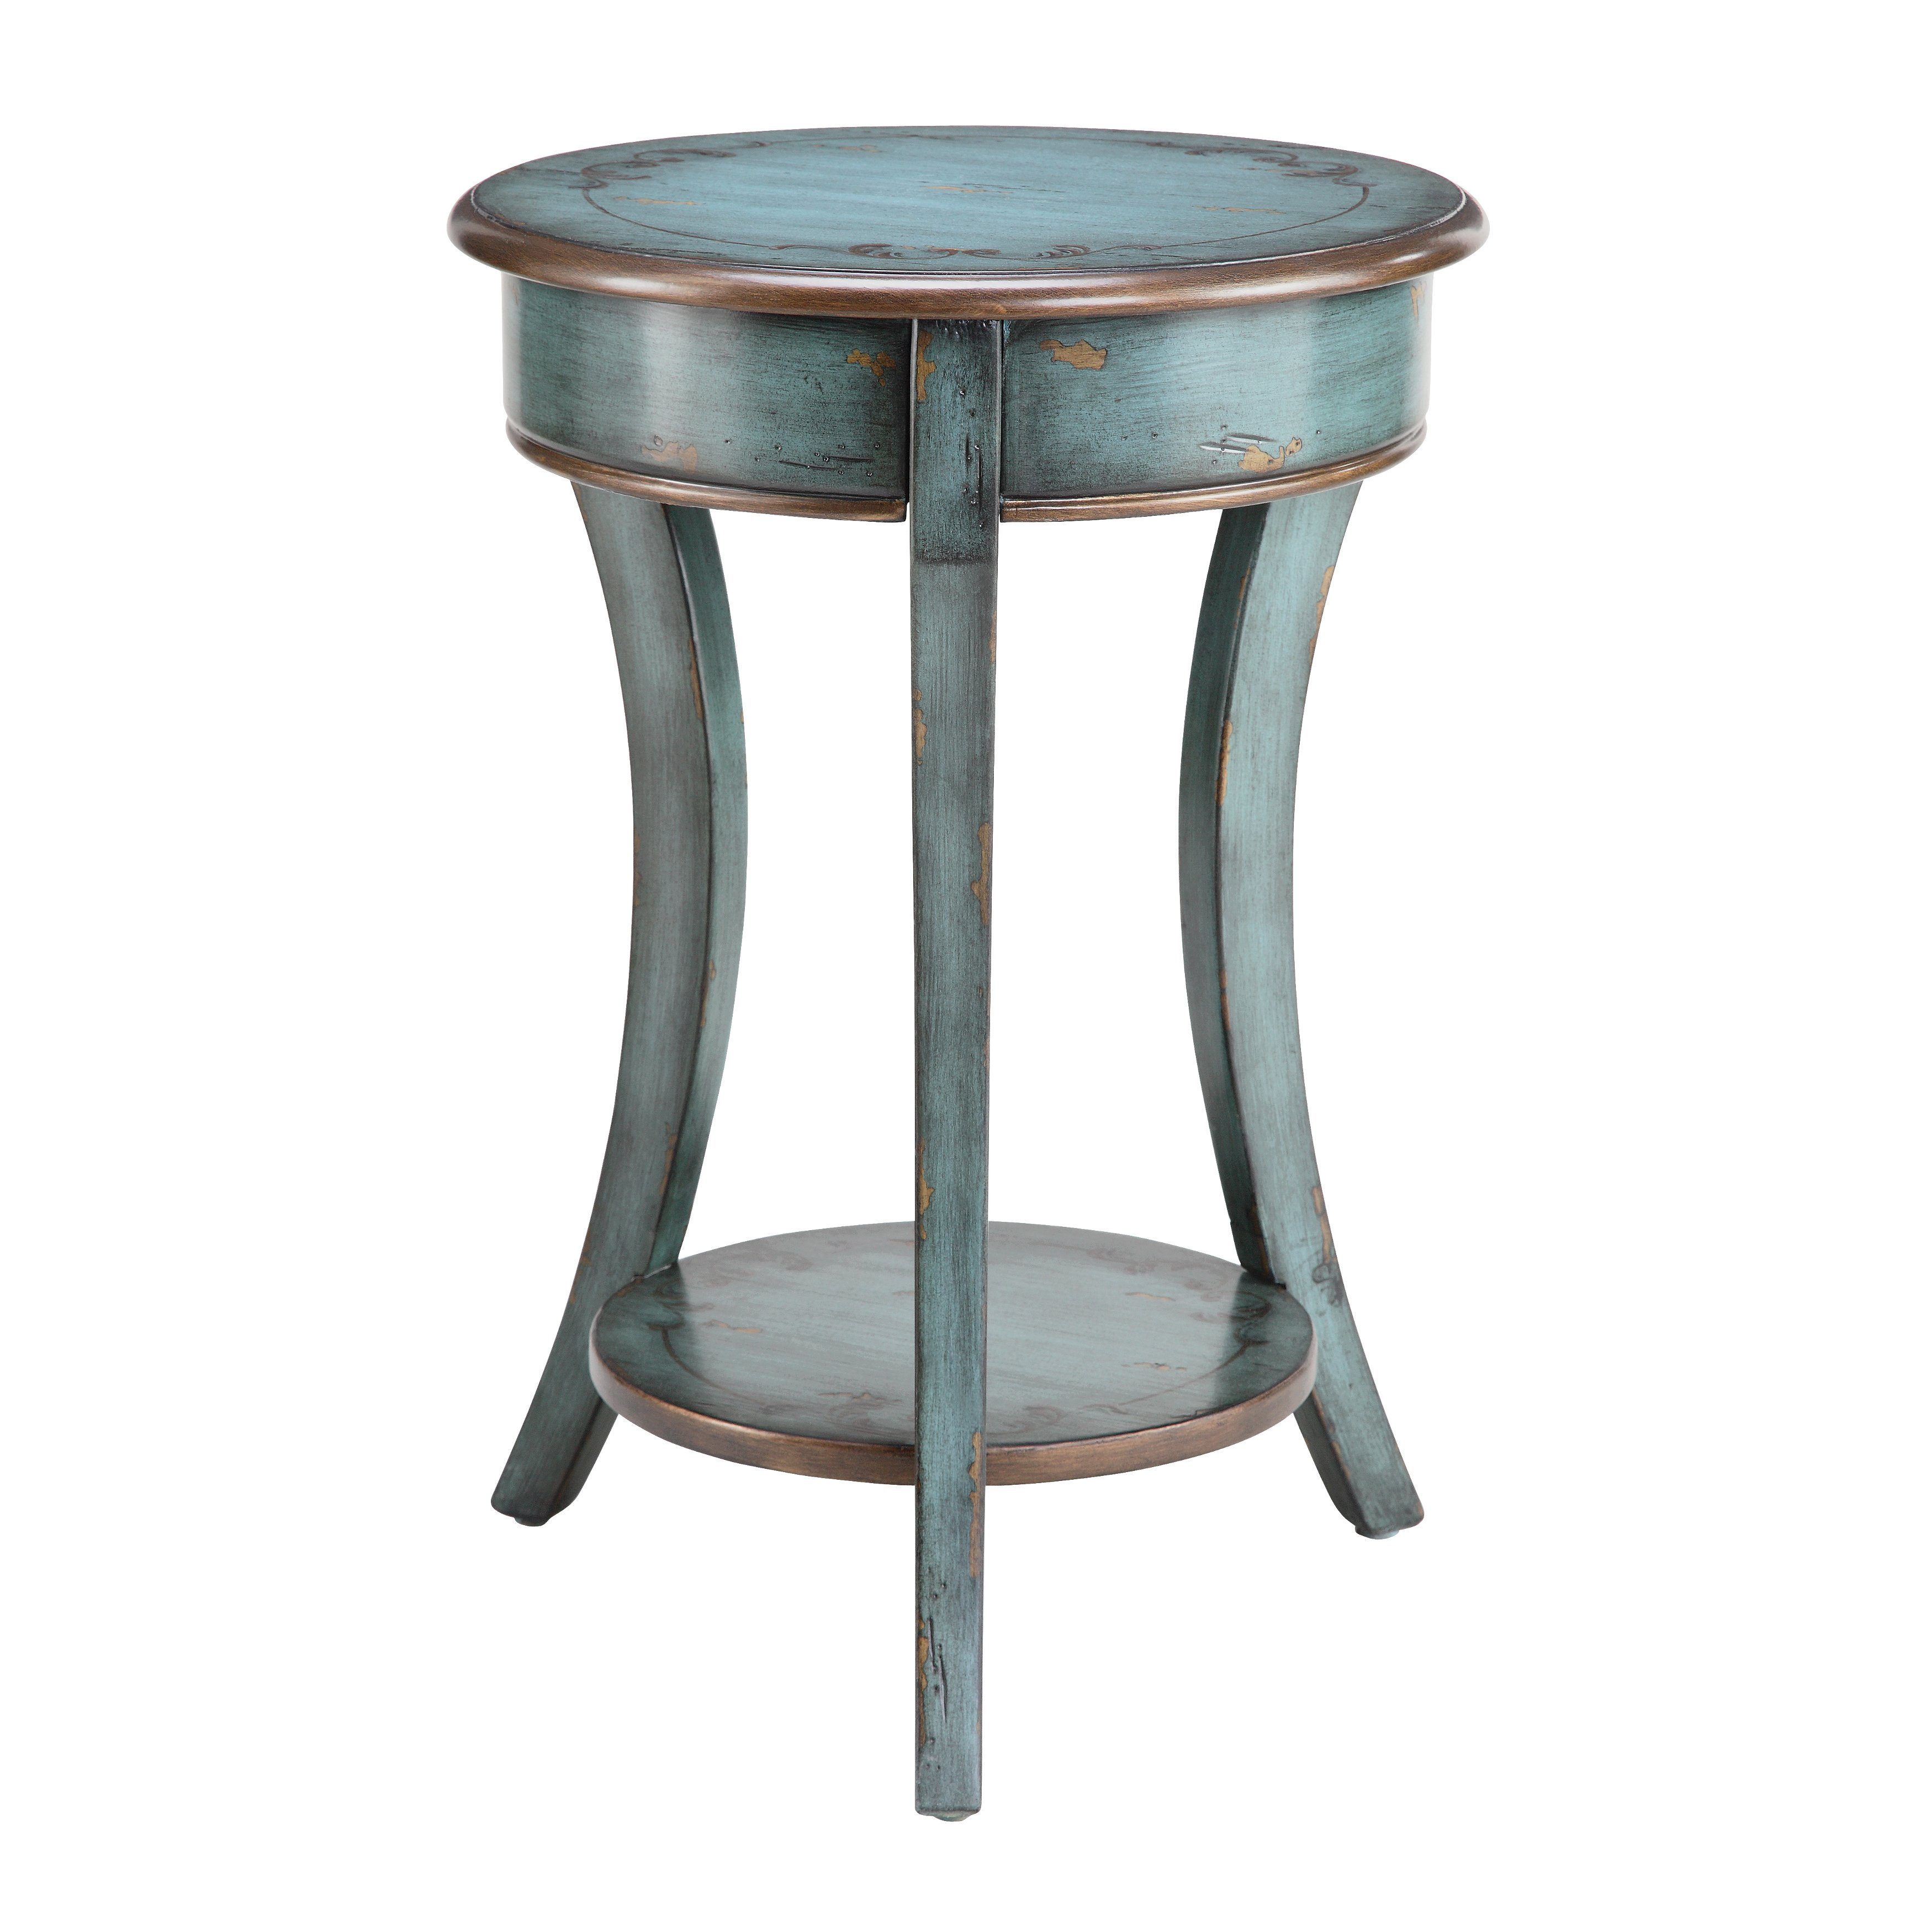 freya round accent table free shipping today with screw legs dining room black metal and wood coffee gresham furniture pottery barn beach floor lamp spotlight all modern lamps